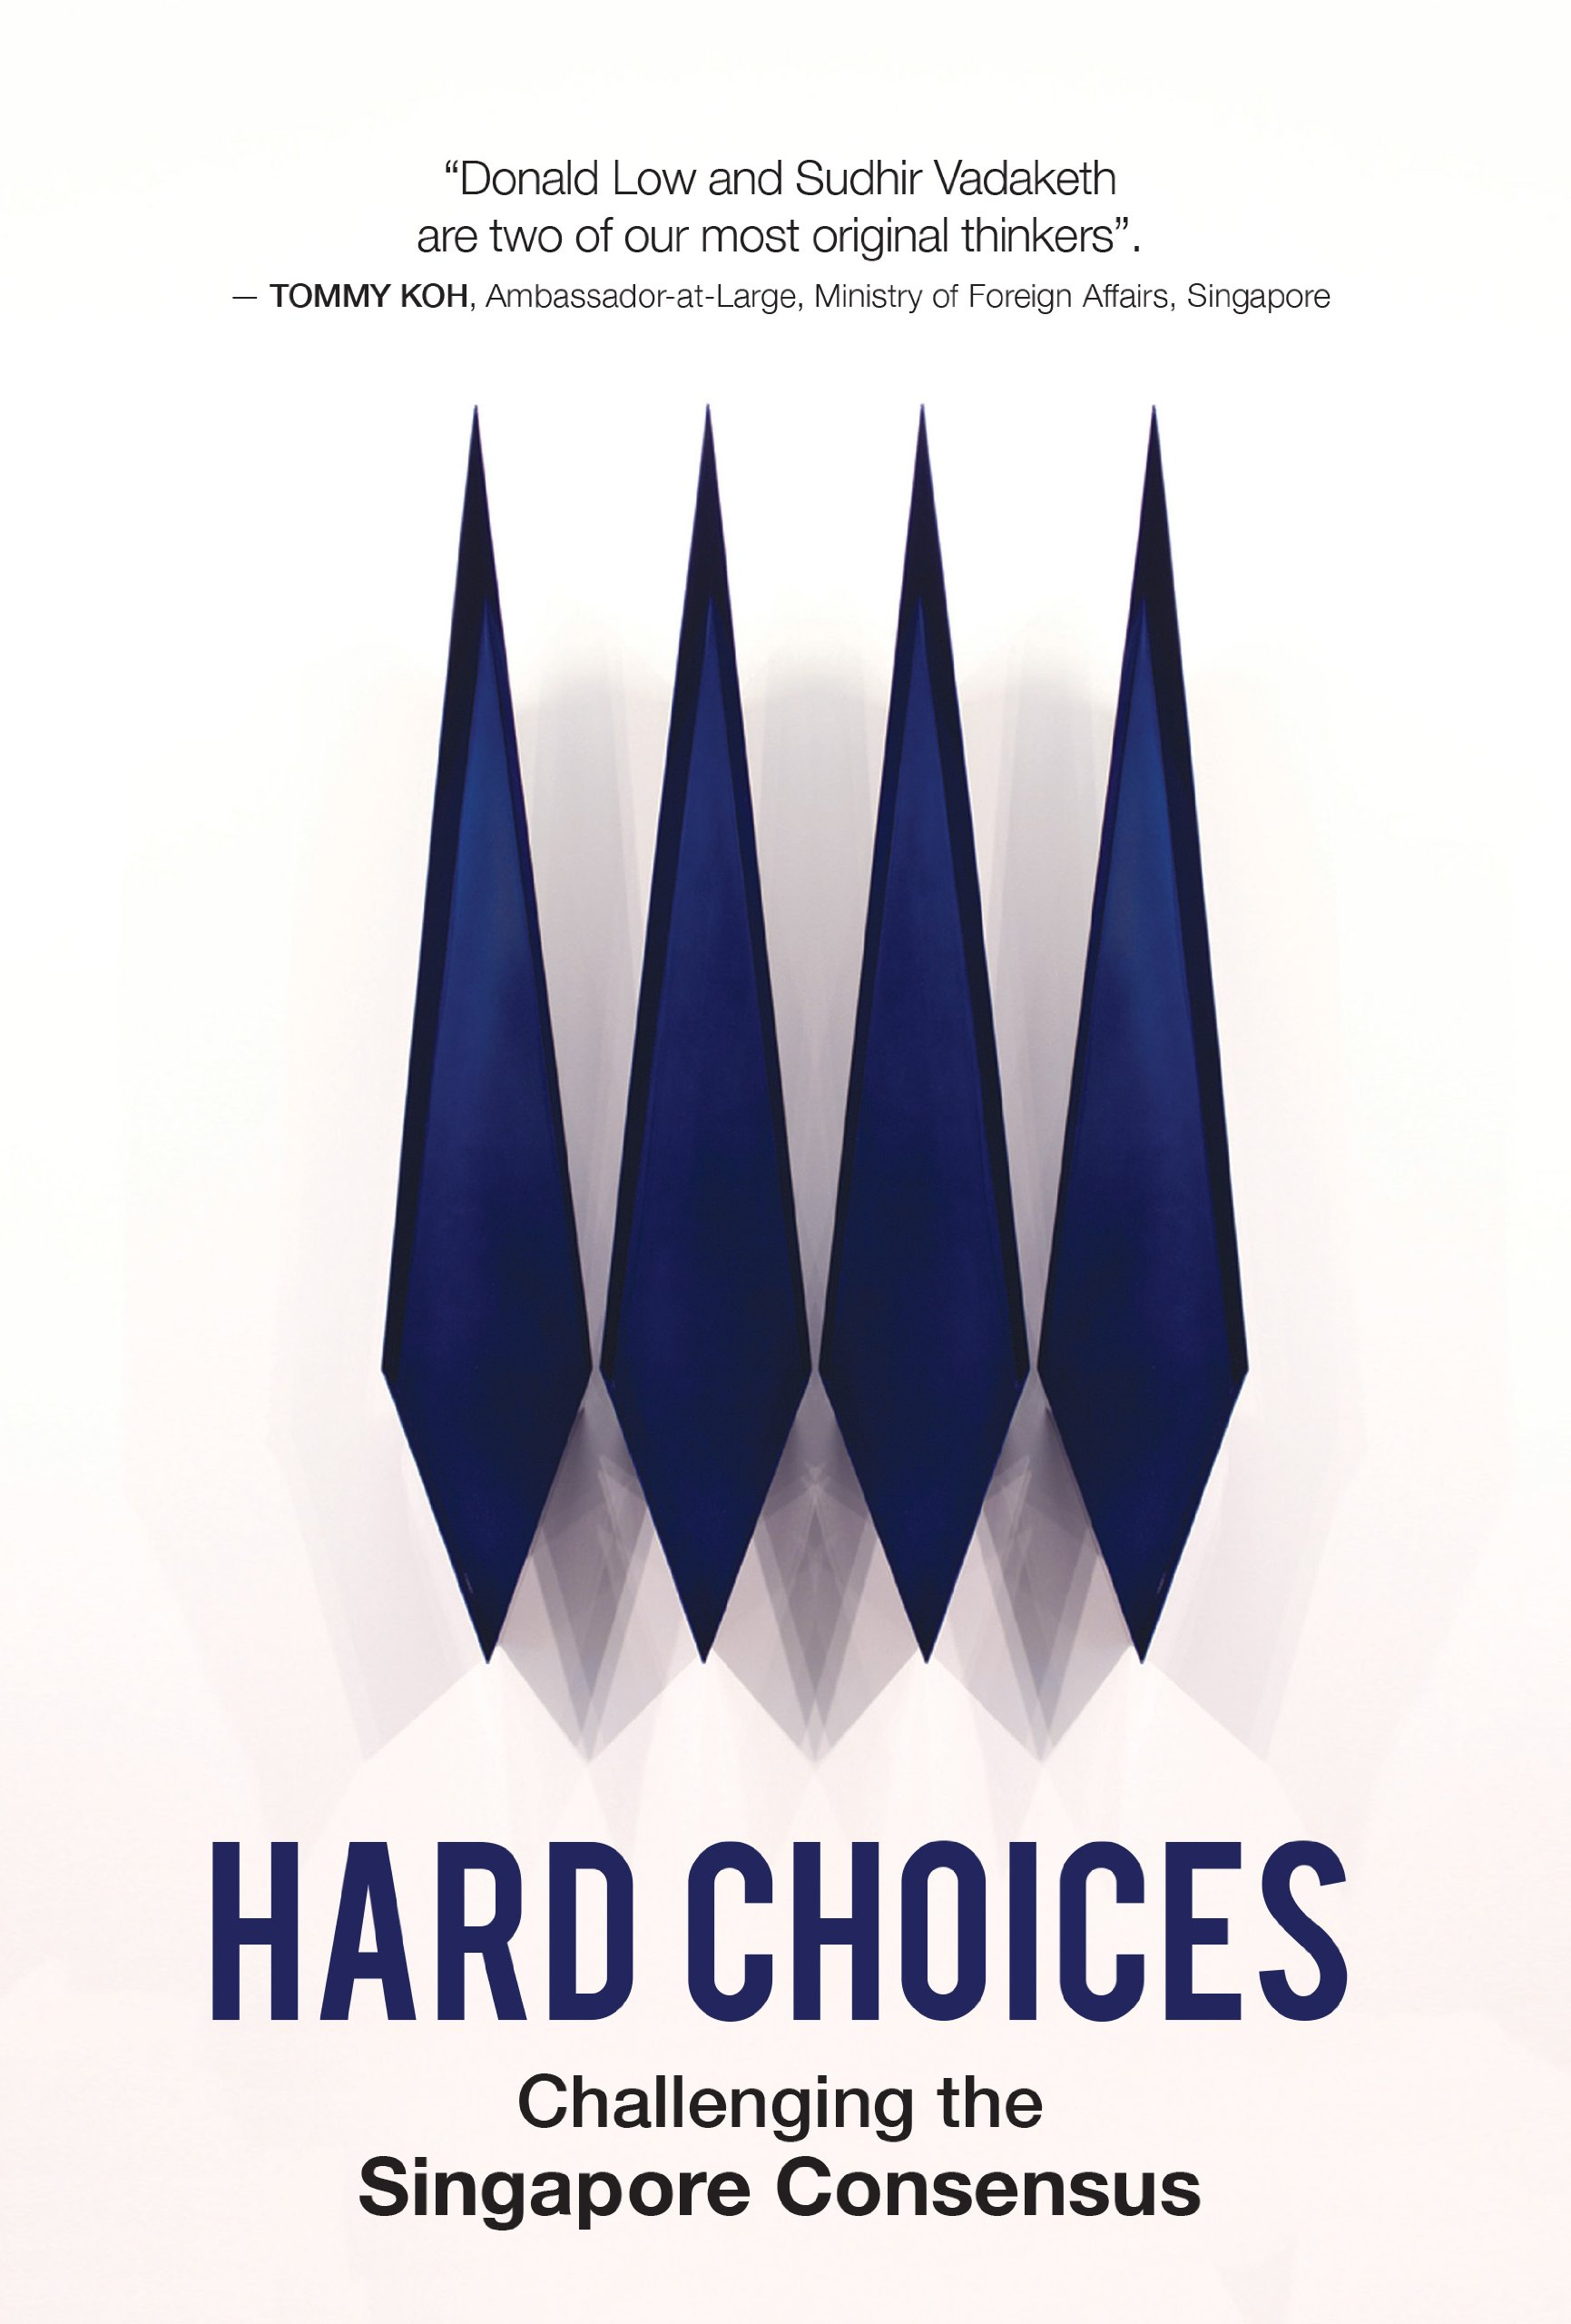 Hard Choices: Challenging the Singapore Consensus